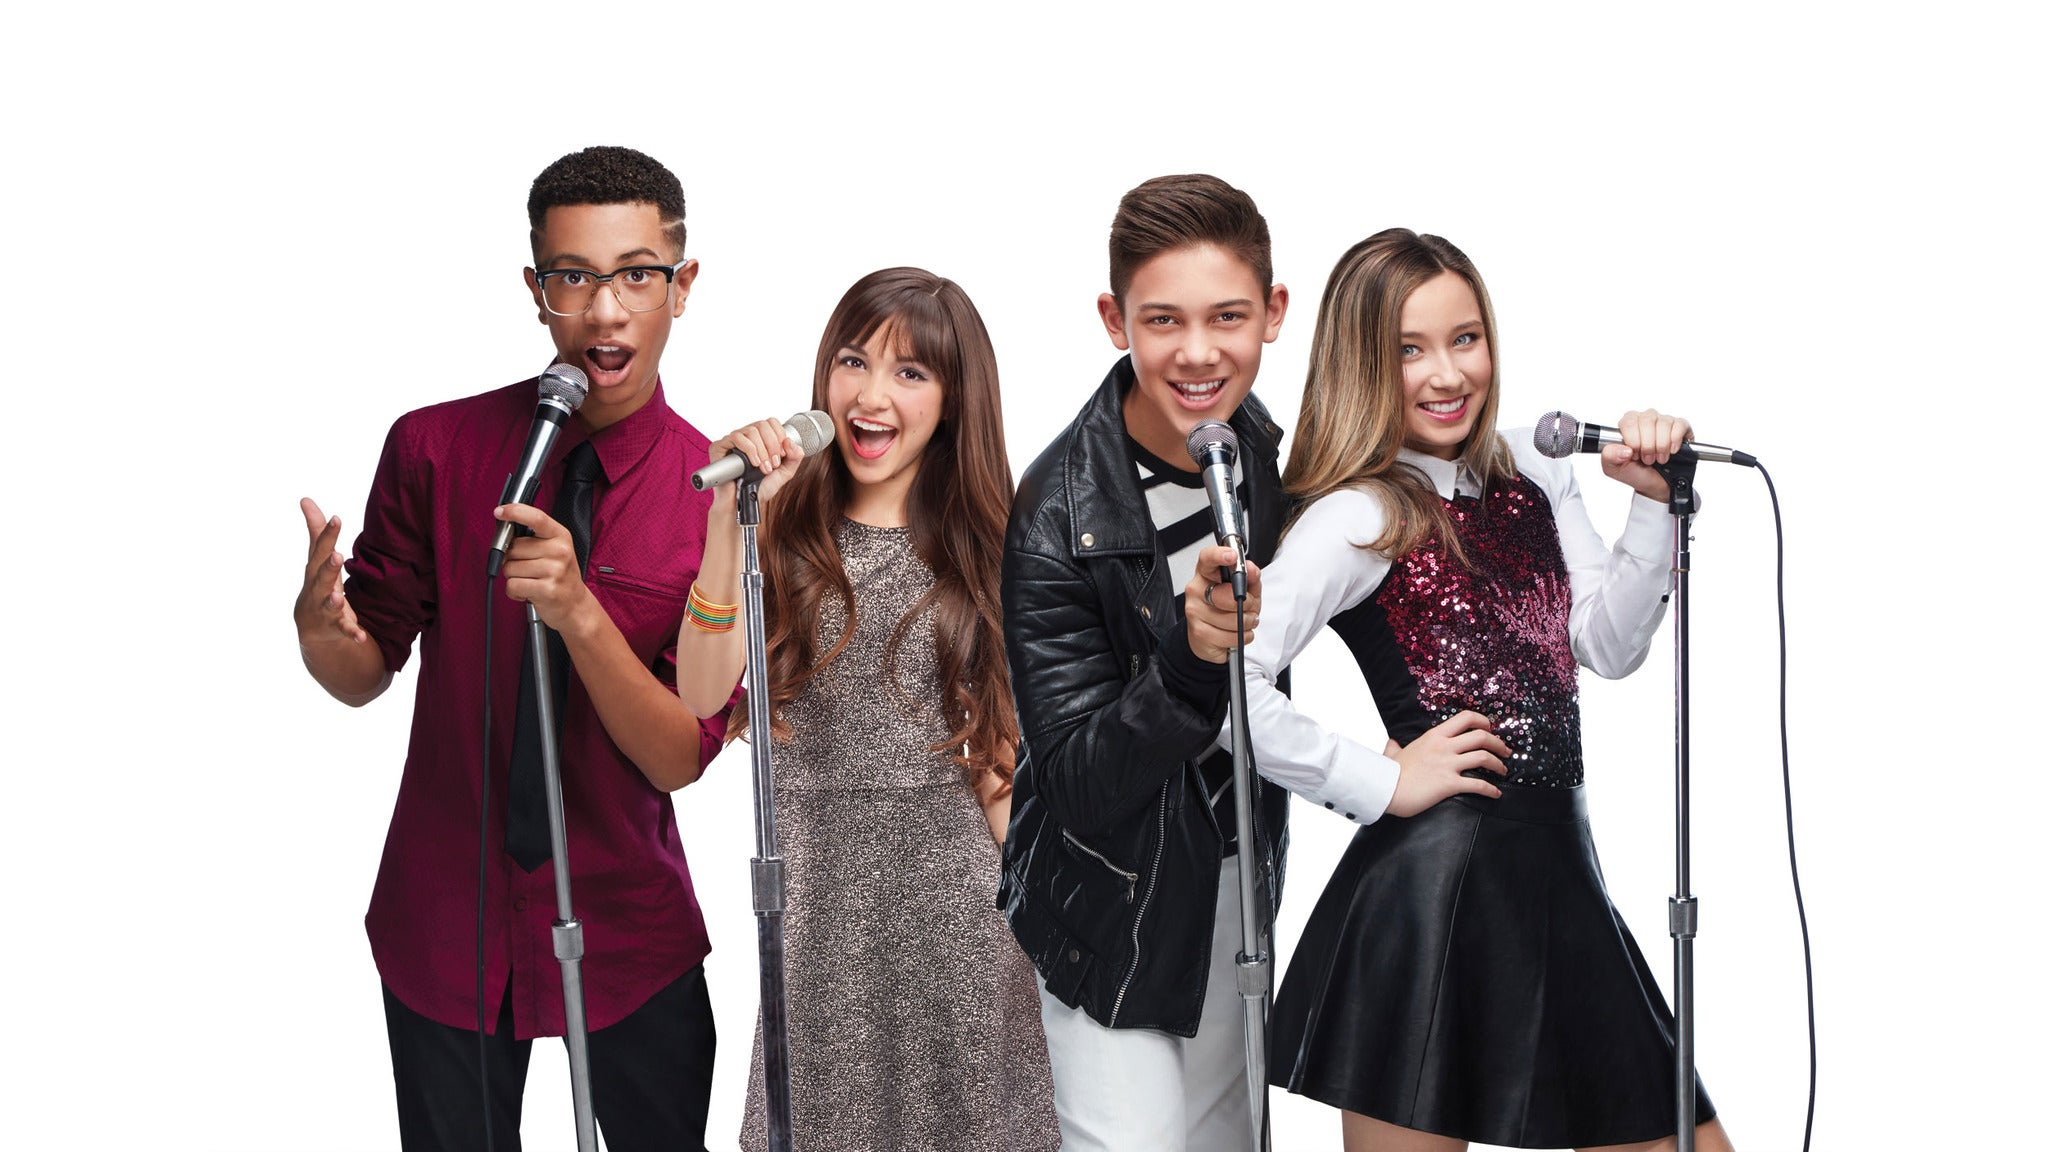 The Kidz Bop Kids: Life Of The Party Tour at GIANT Center